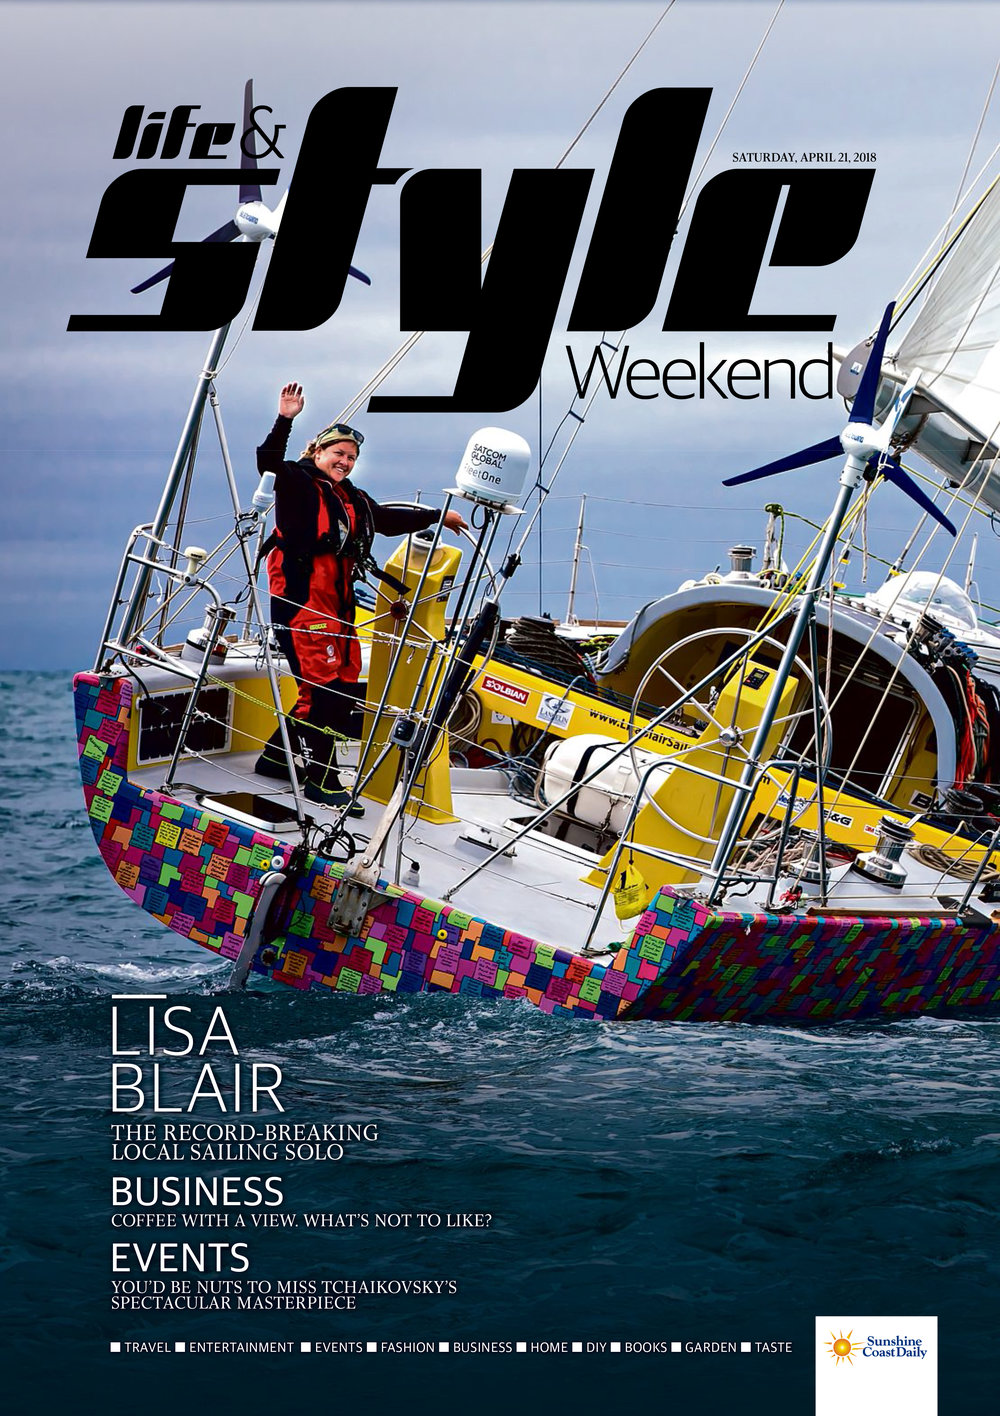 Lisa Blair the record breaking local sailing solo